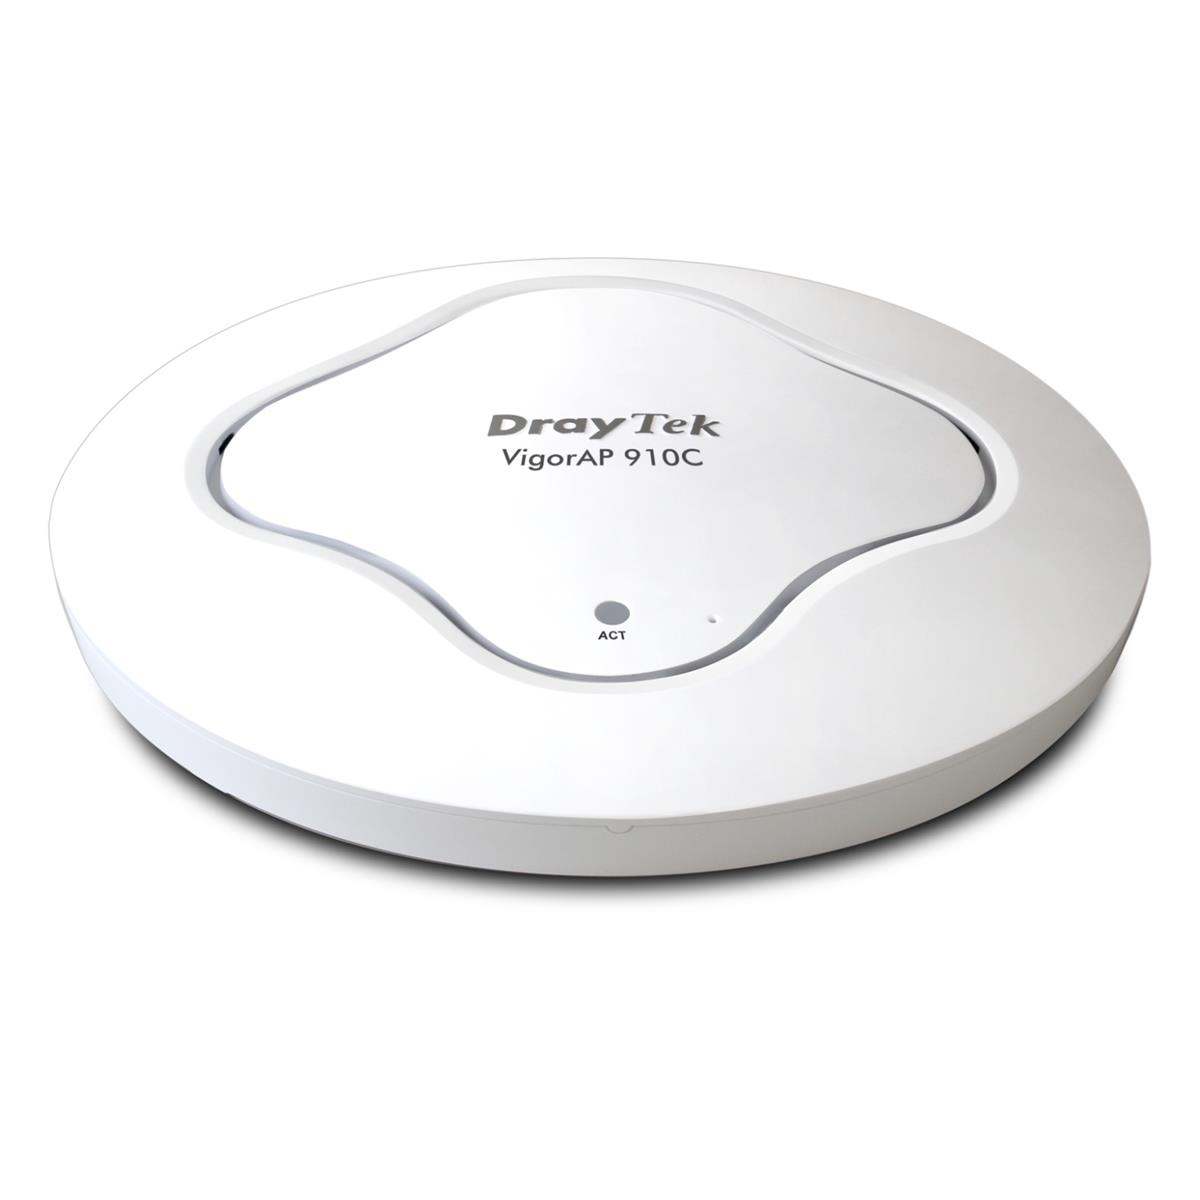 DrayTek Vigor AP-910C Simultaneous Dual-Band WiFi PoE Access Point